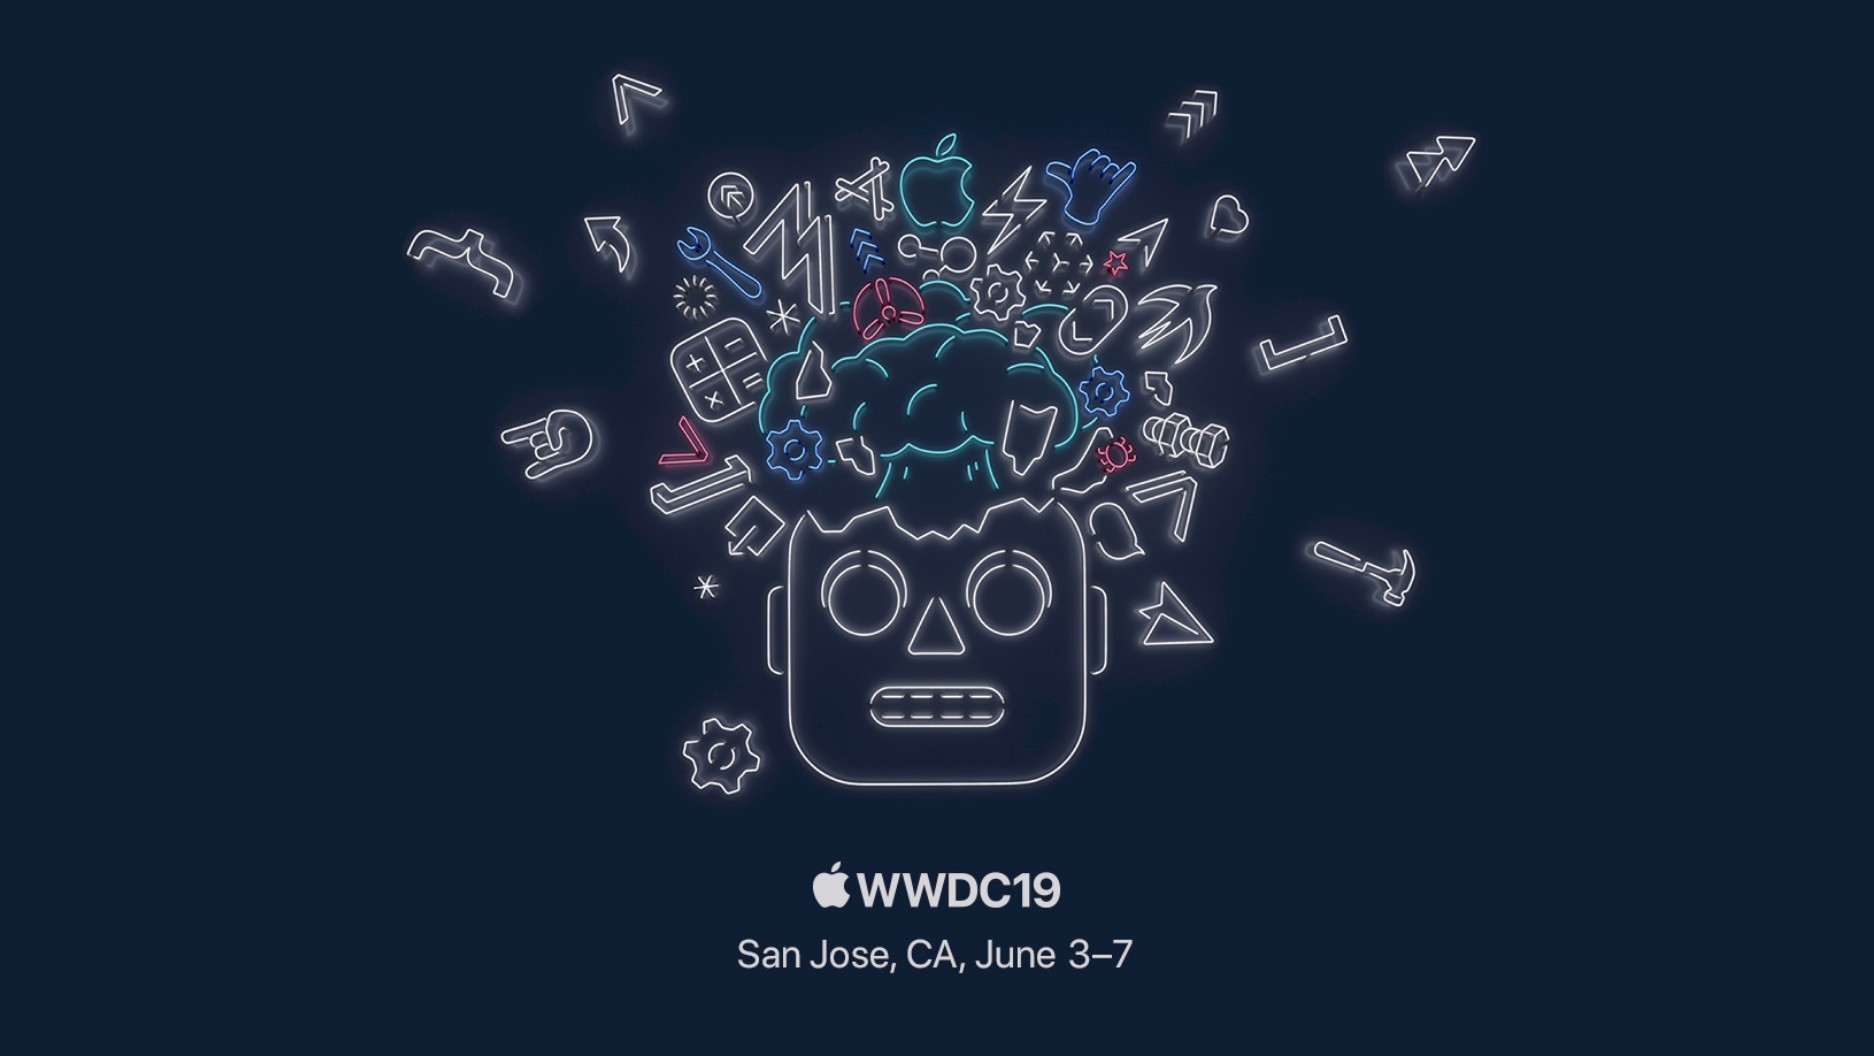 Apple WWDC 2019 starts June 3 in San Jose